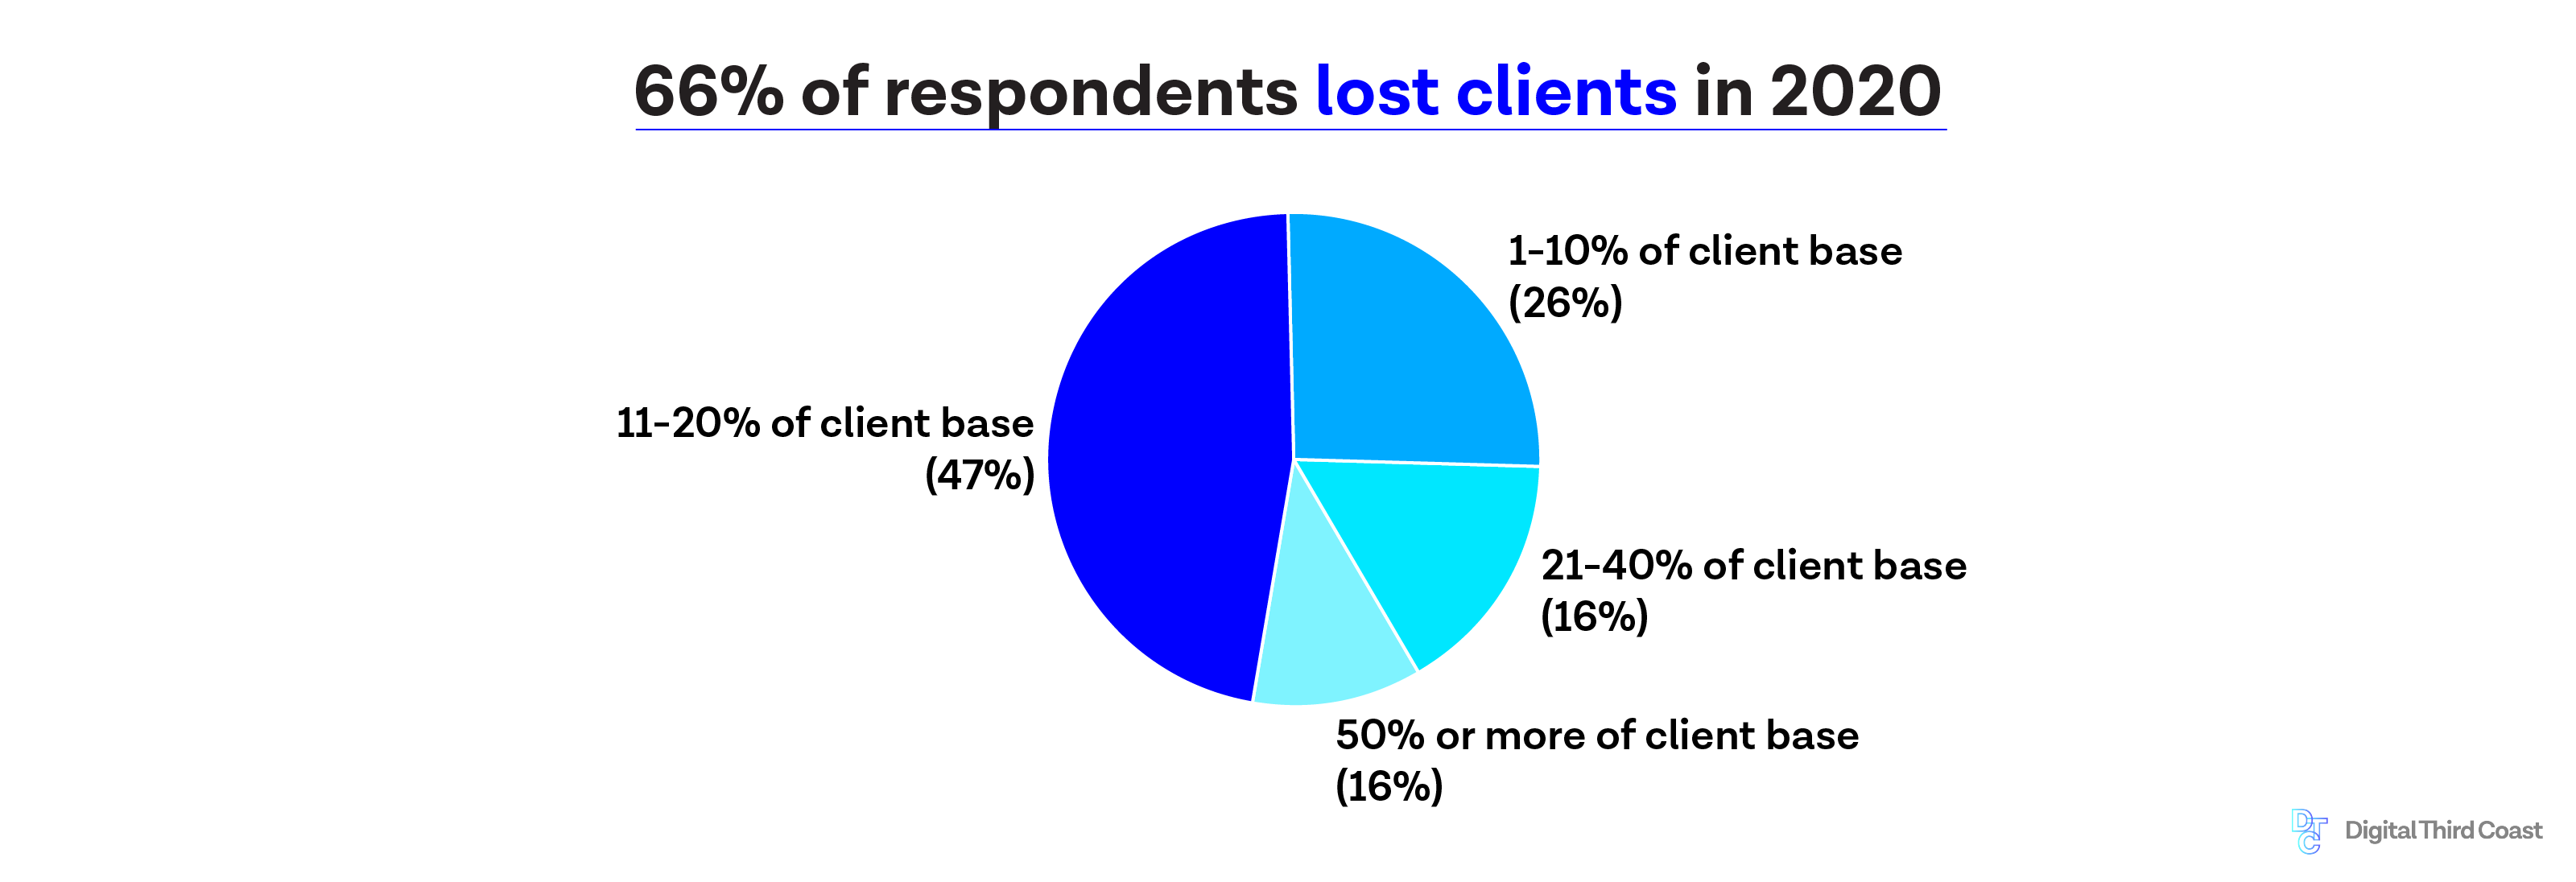 pie chart 66% of respondents lost clients in 2020